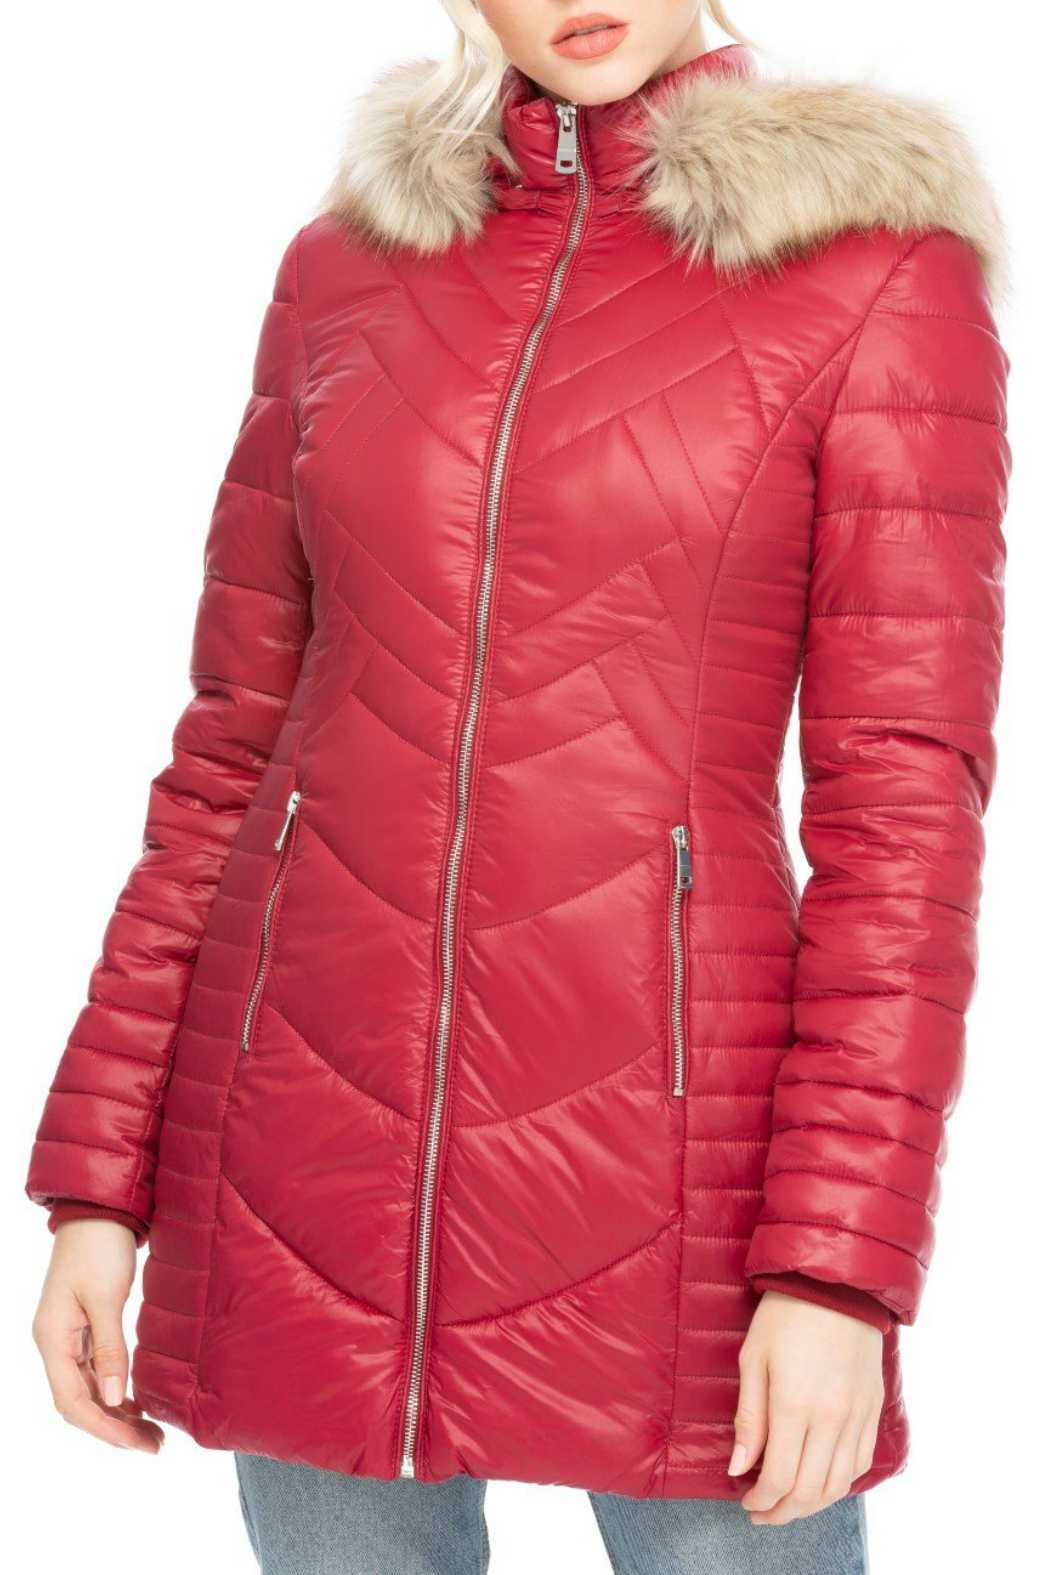 Coalition Whats the stitch hooded coat - Main Image